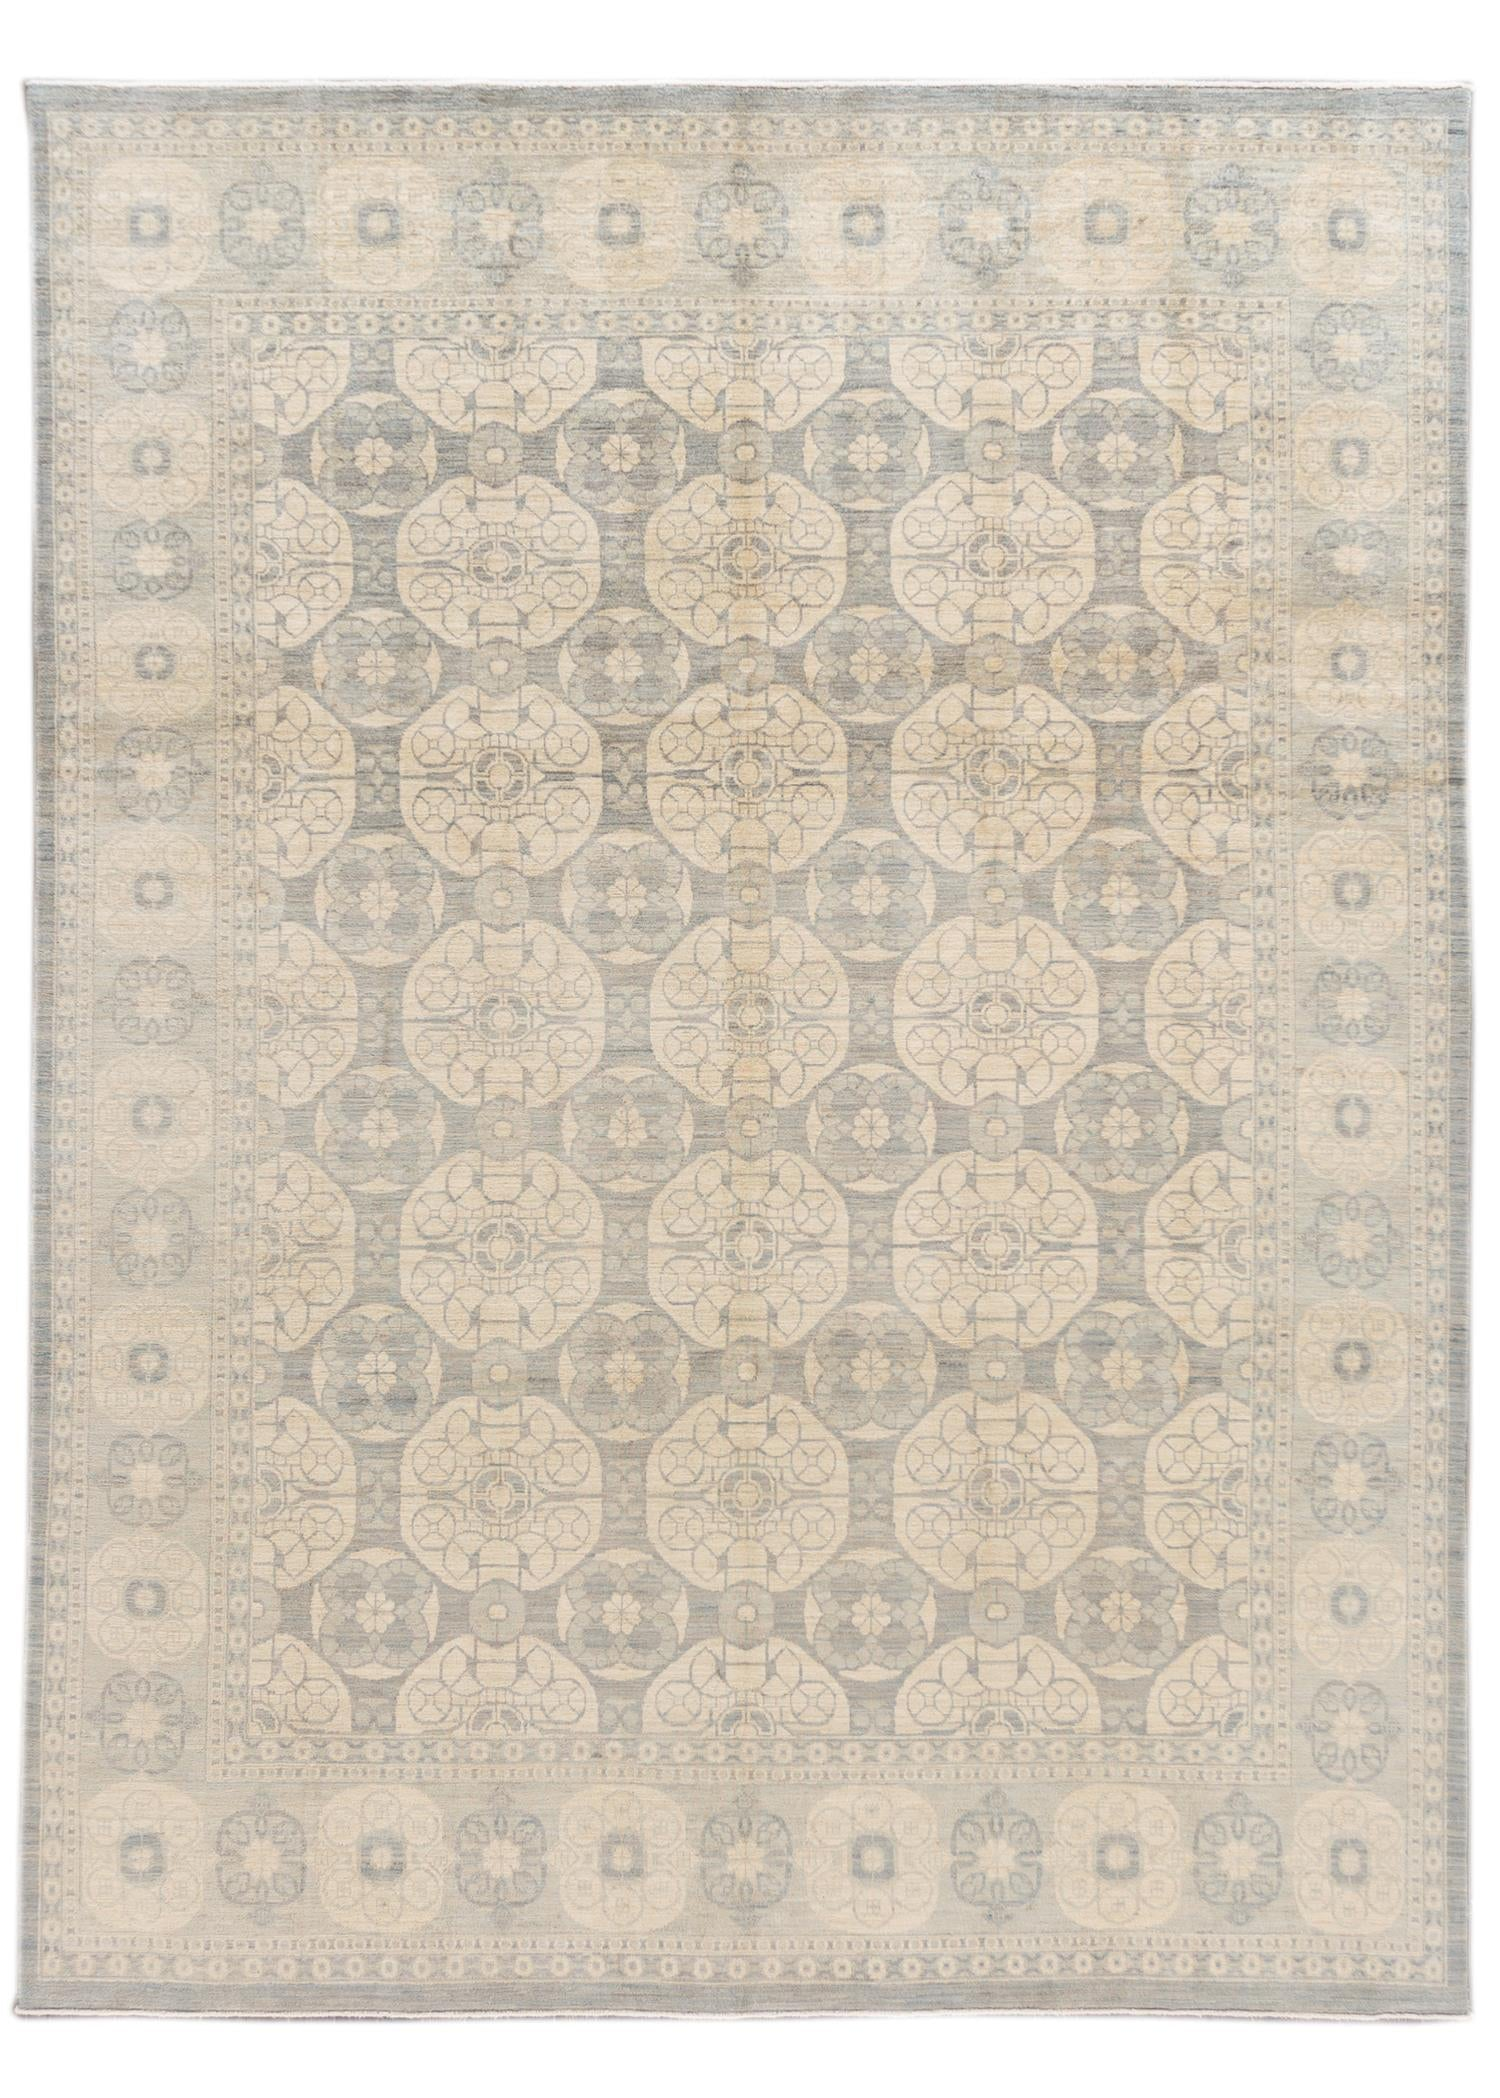 Contemporary Grey and Ivory Khotan-Style Wool Area Rug 9' x 12'